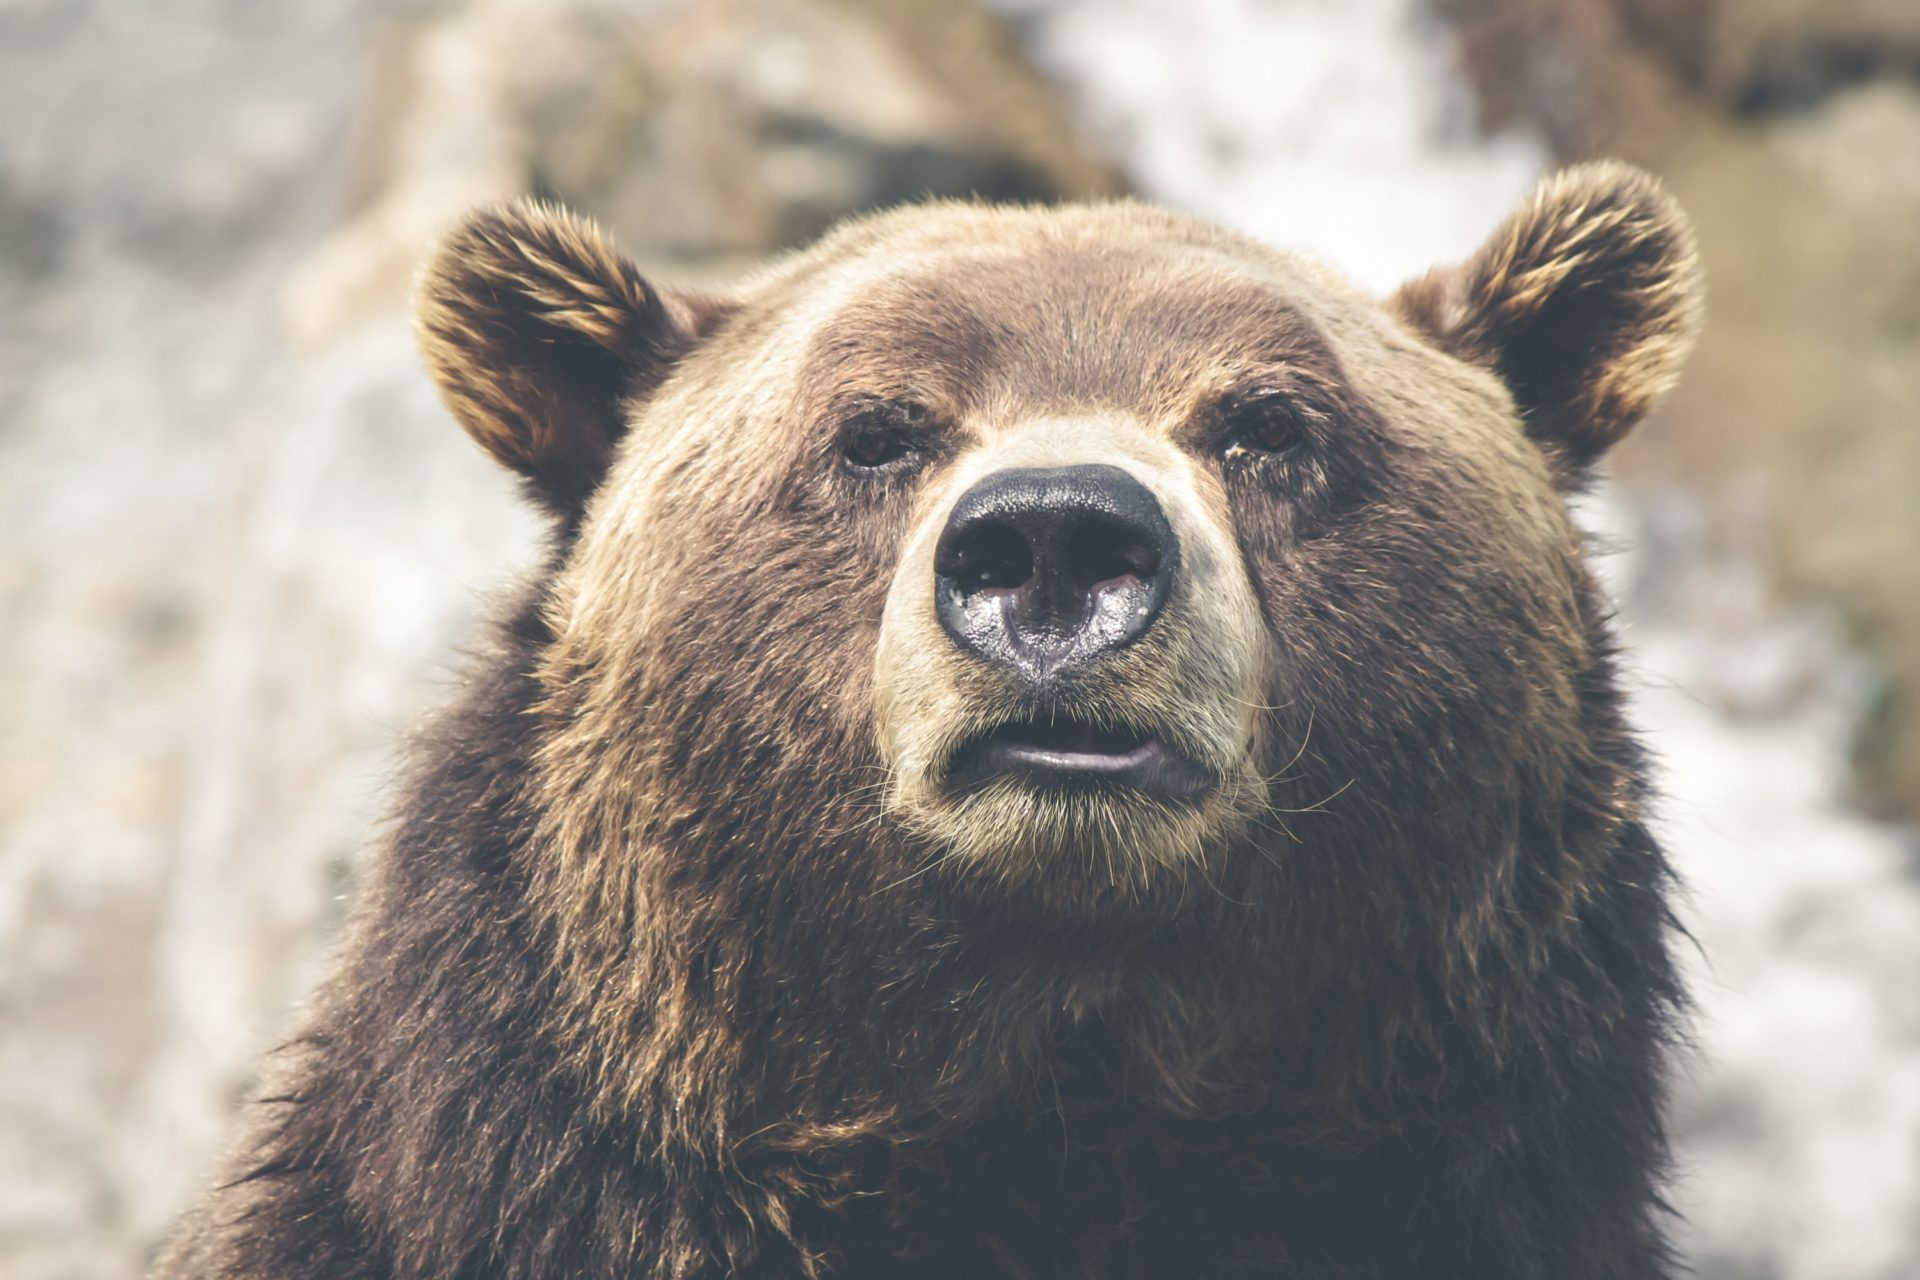 Short-Term Bitcoin Bear: HODLers To Be Decimated By BTC Dump To $2,000 13